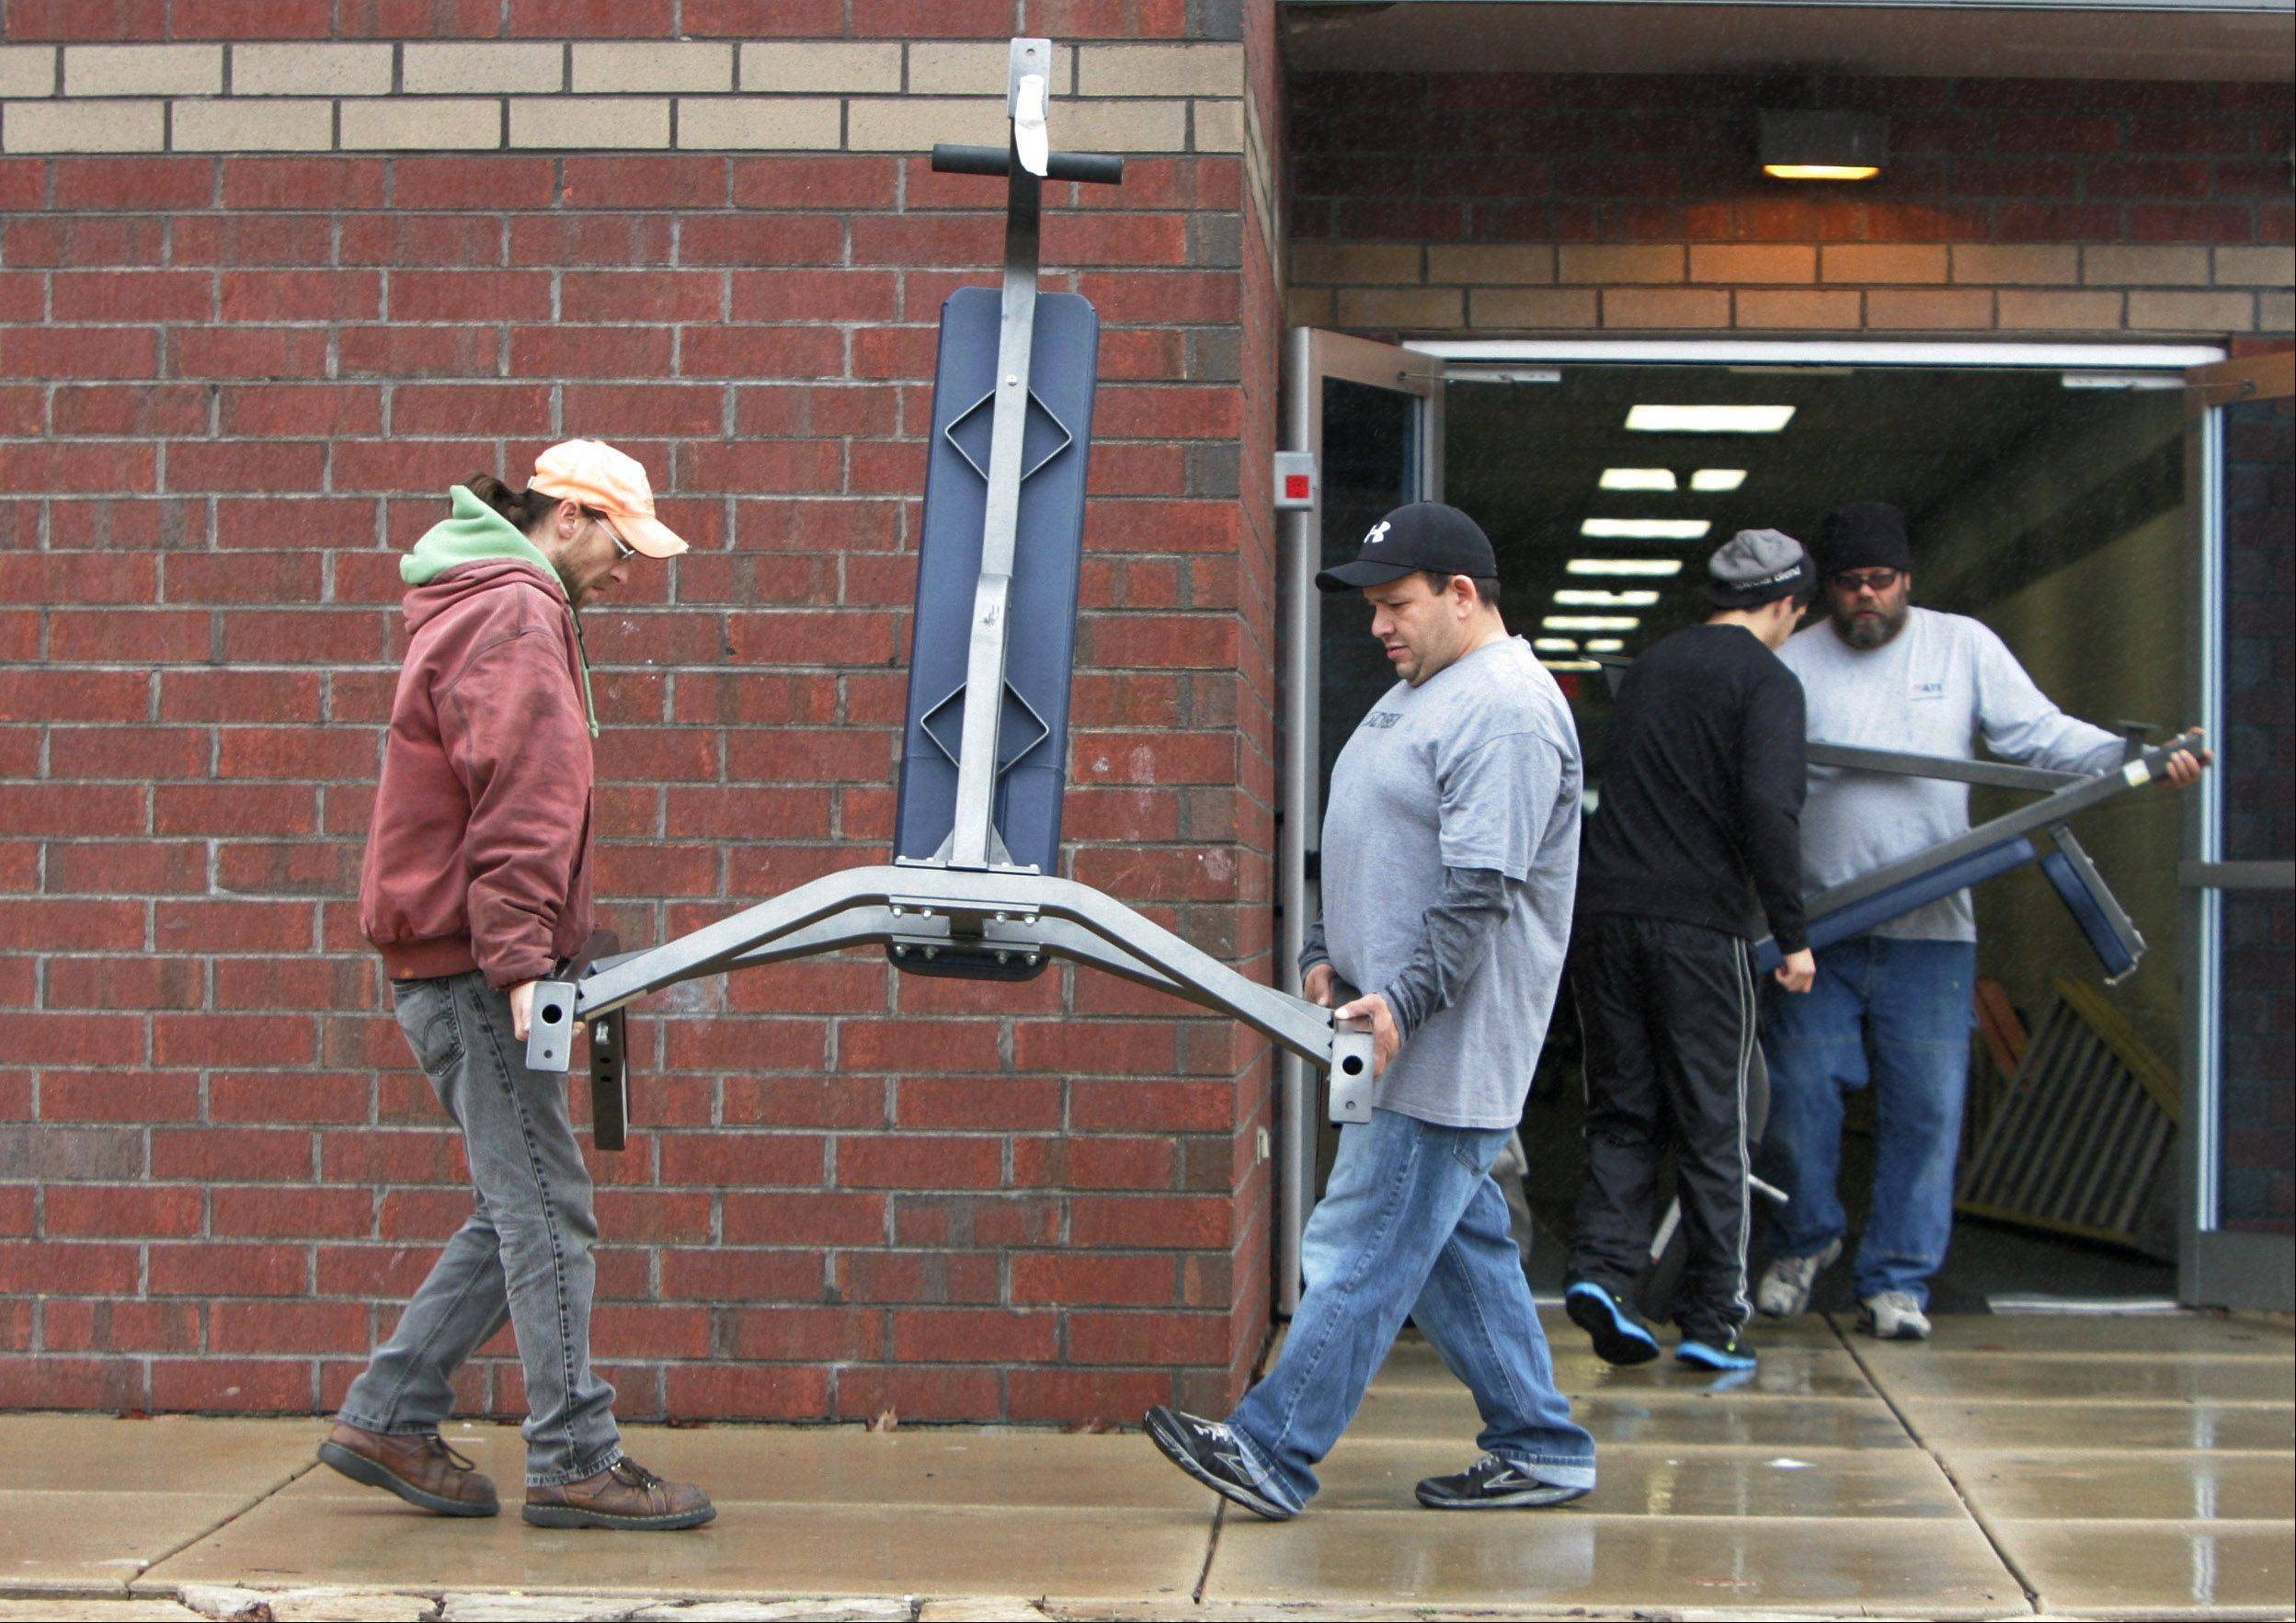 Fitness Equipment Services movers James Dunning, left, and Fernando Silva, remove exercise equipment from the New Lakeview Fitness Center Wednesday in Vernon Hills. The former YMCA closed last year and fitness equipment from the Vernon Hills Park District Sullivan Center will be moved to this site.